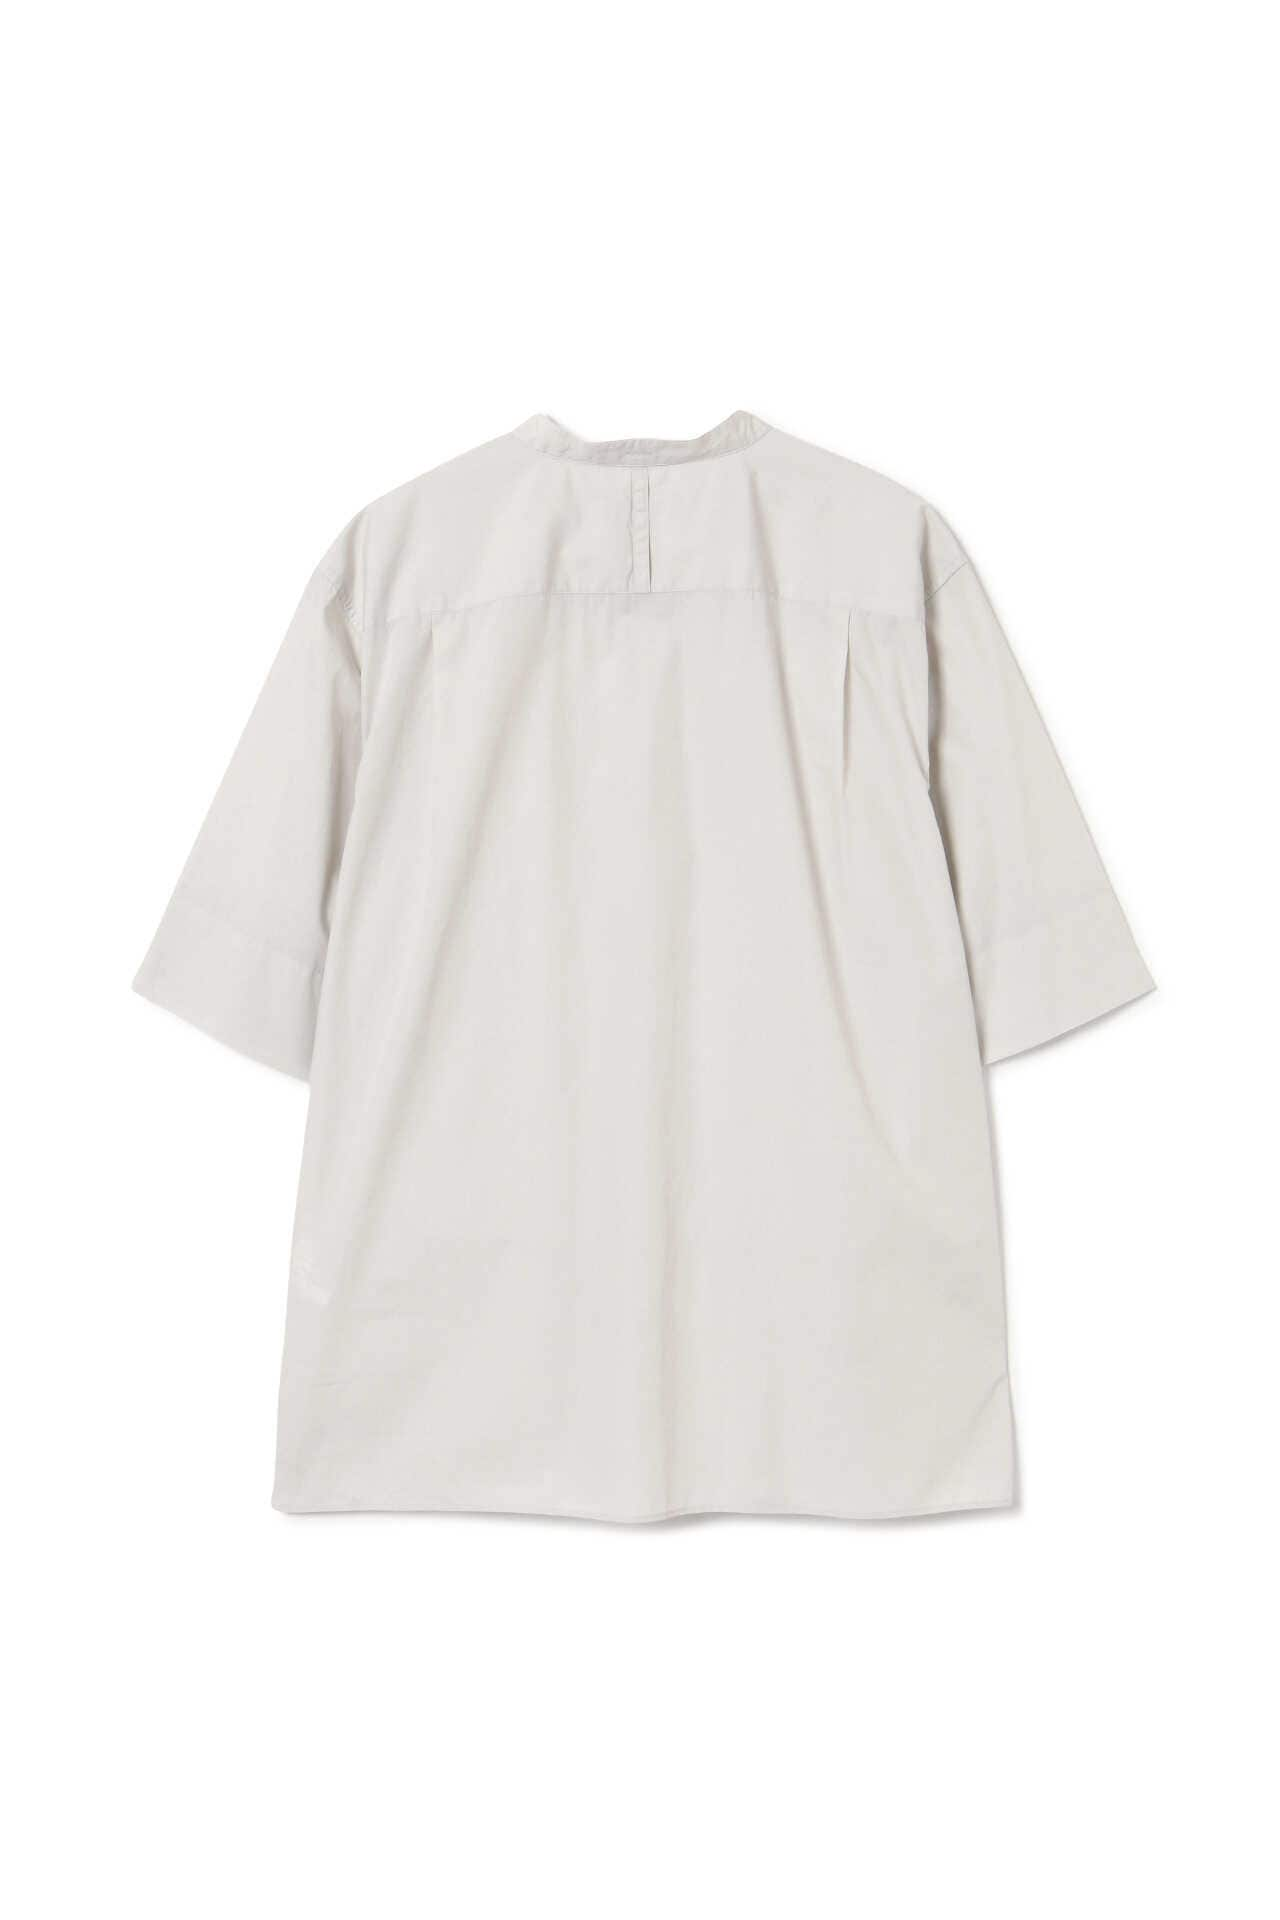 LIGHT COTTON POPLIN8